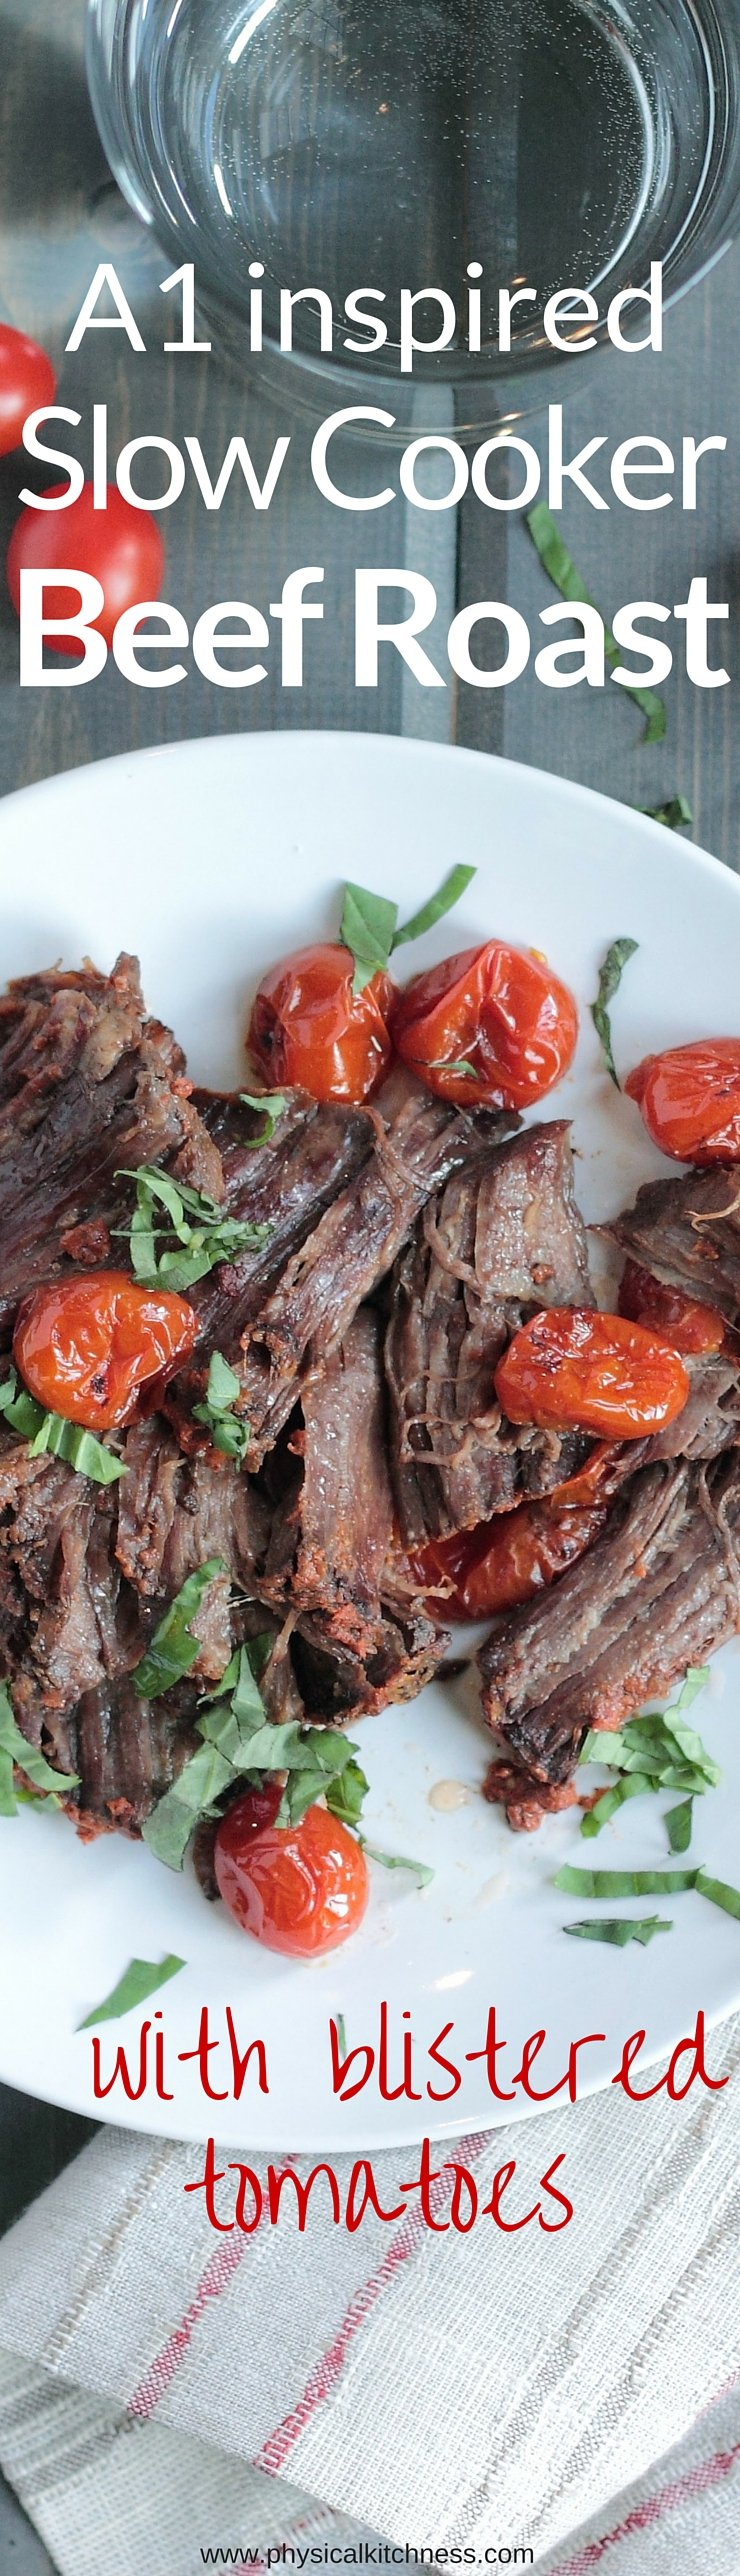 THIS slow cooker beef pot roast is PACKED full of flavor. It's paleo and Whole30 complaint too. If you love A1 sauce, you will love how easy it is to replicate and incorporate into a high protein meal the family will love!